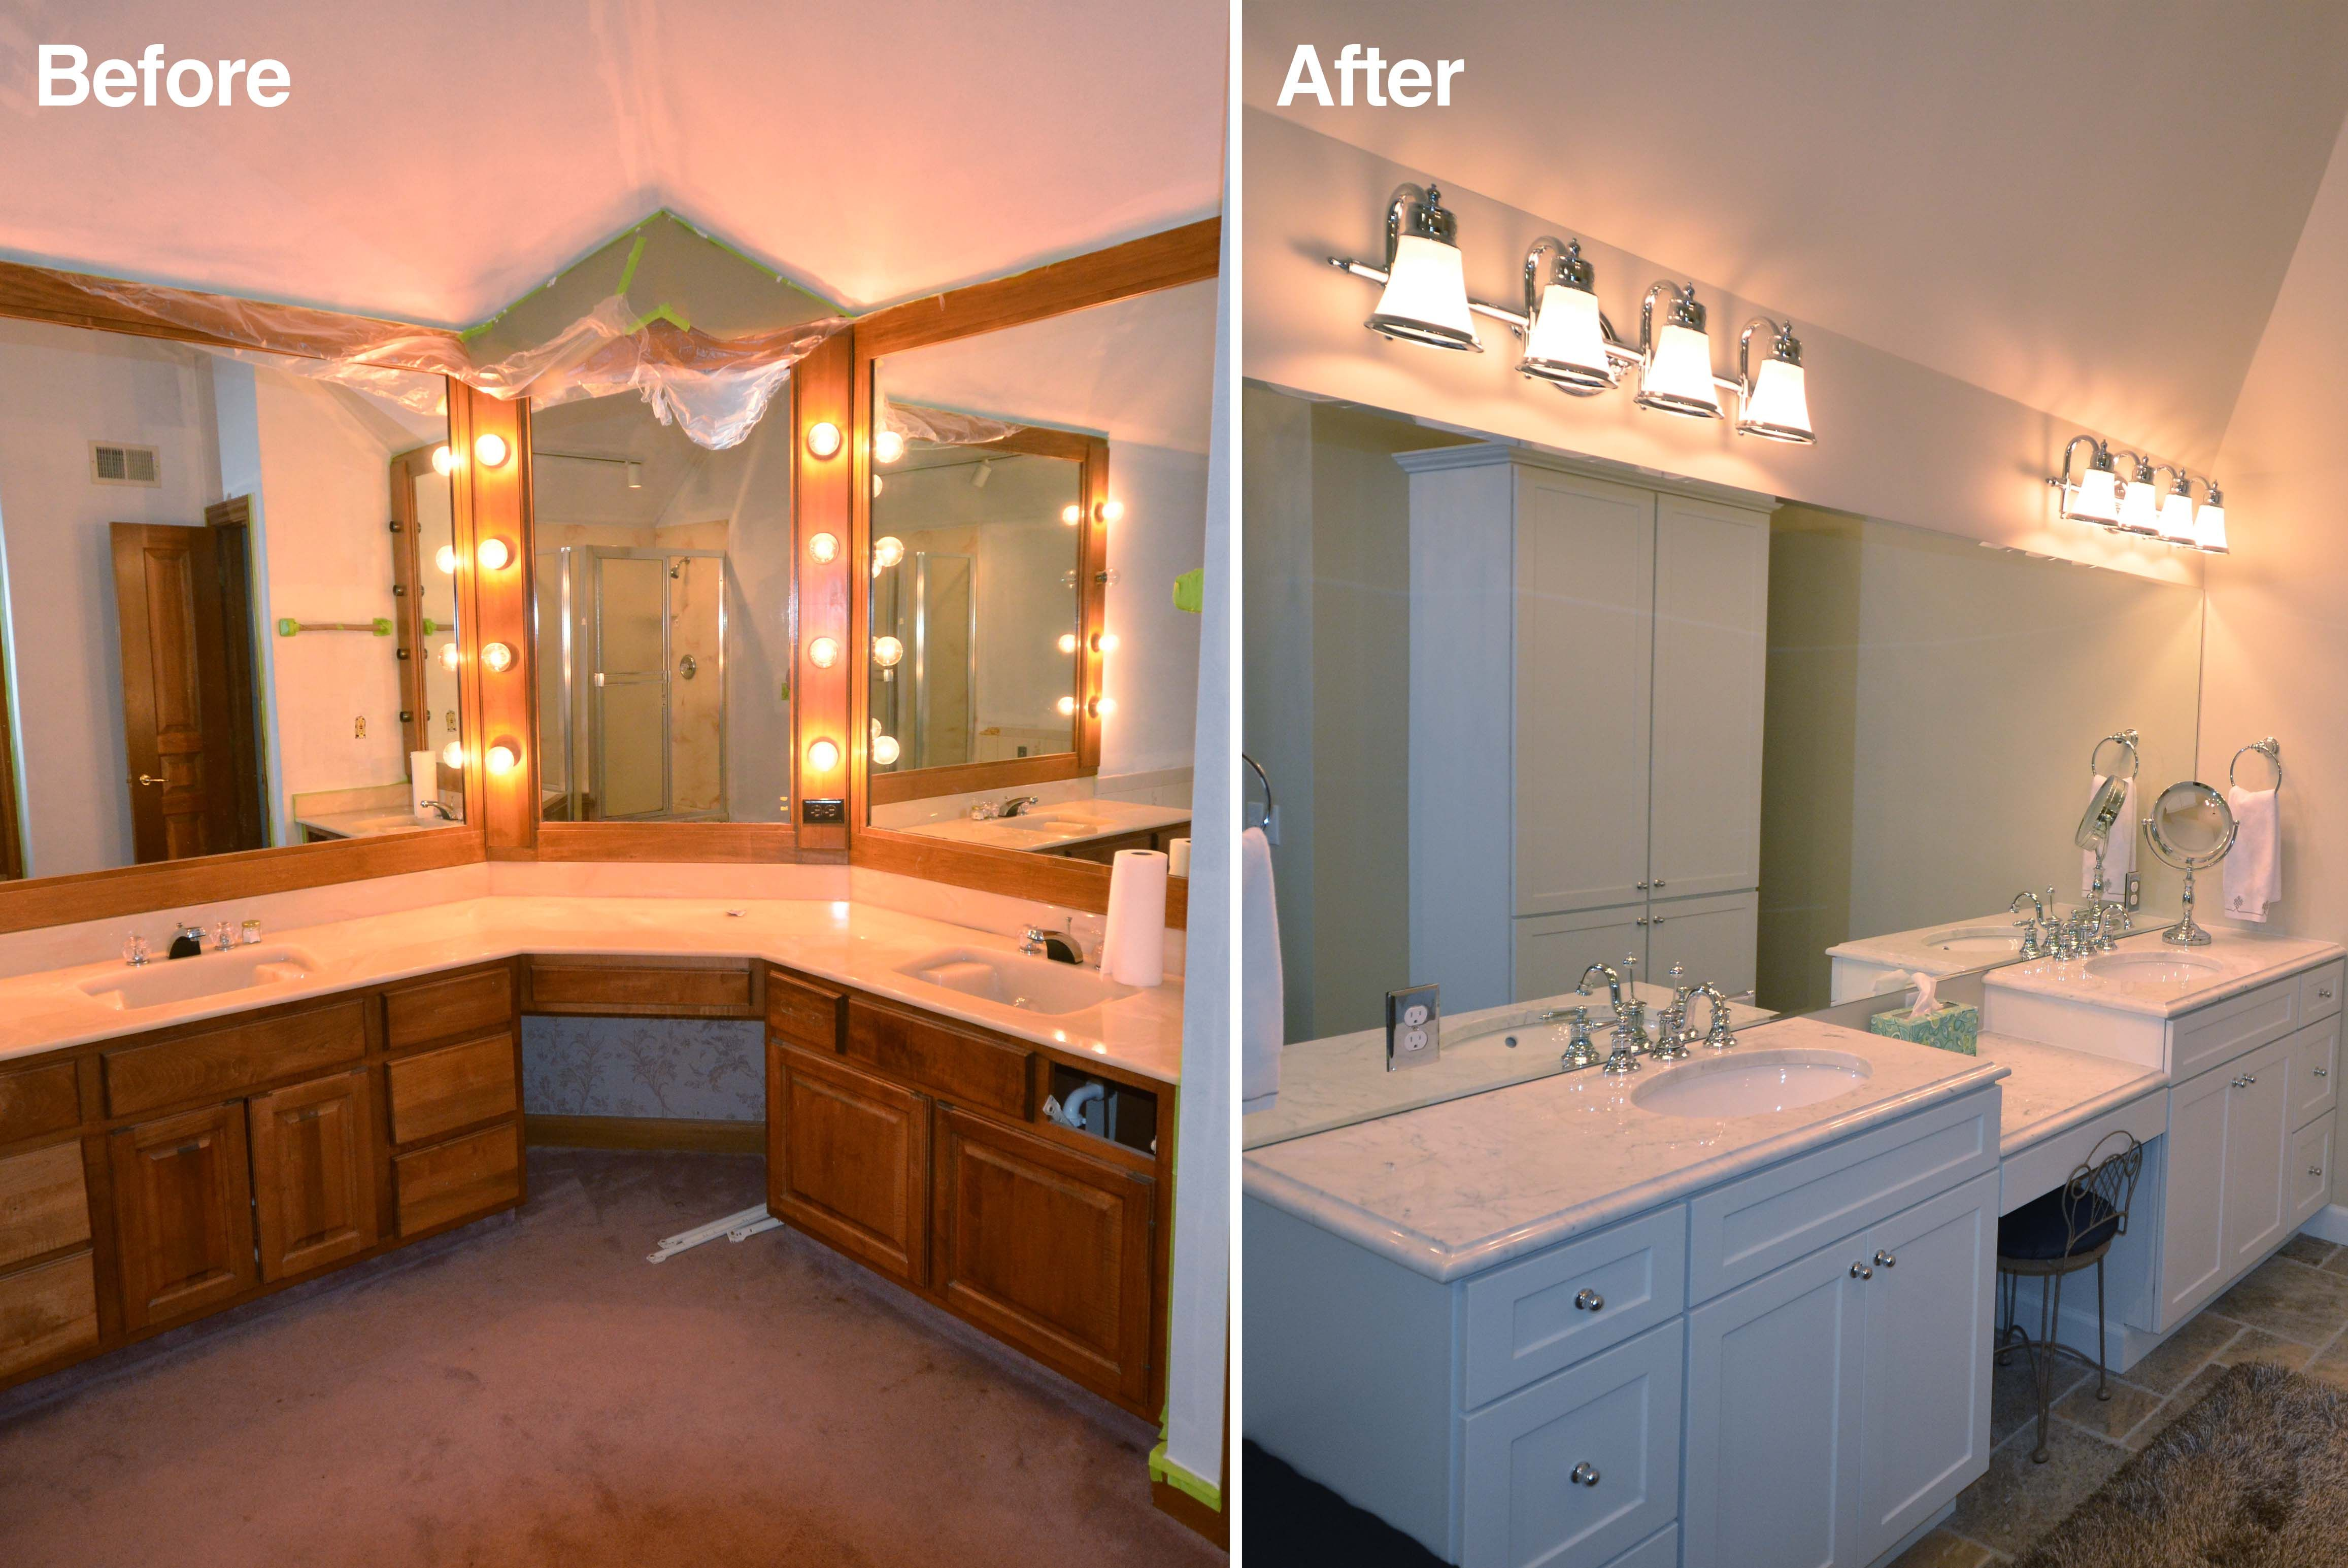 A Bathroom Remodel Job For A Customer In Columbus Ohio Complete Bathroom Remodel Bathroom Remodel Shower Bathroom Remodel Cost